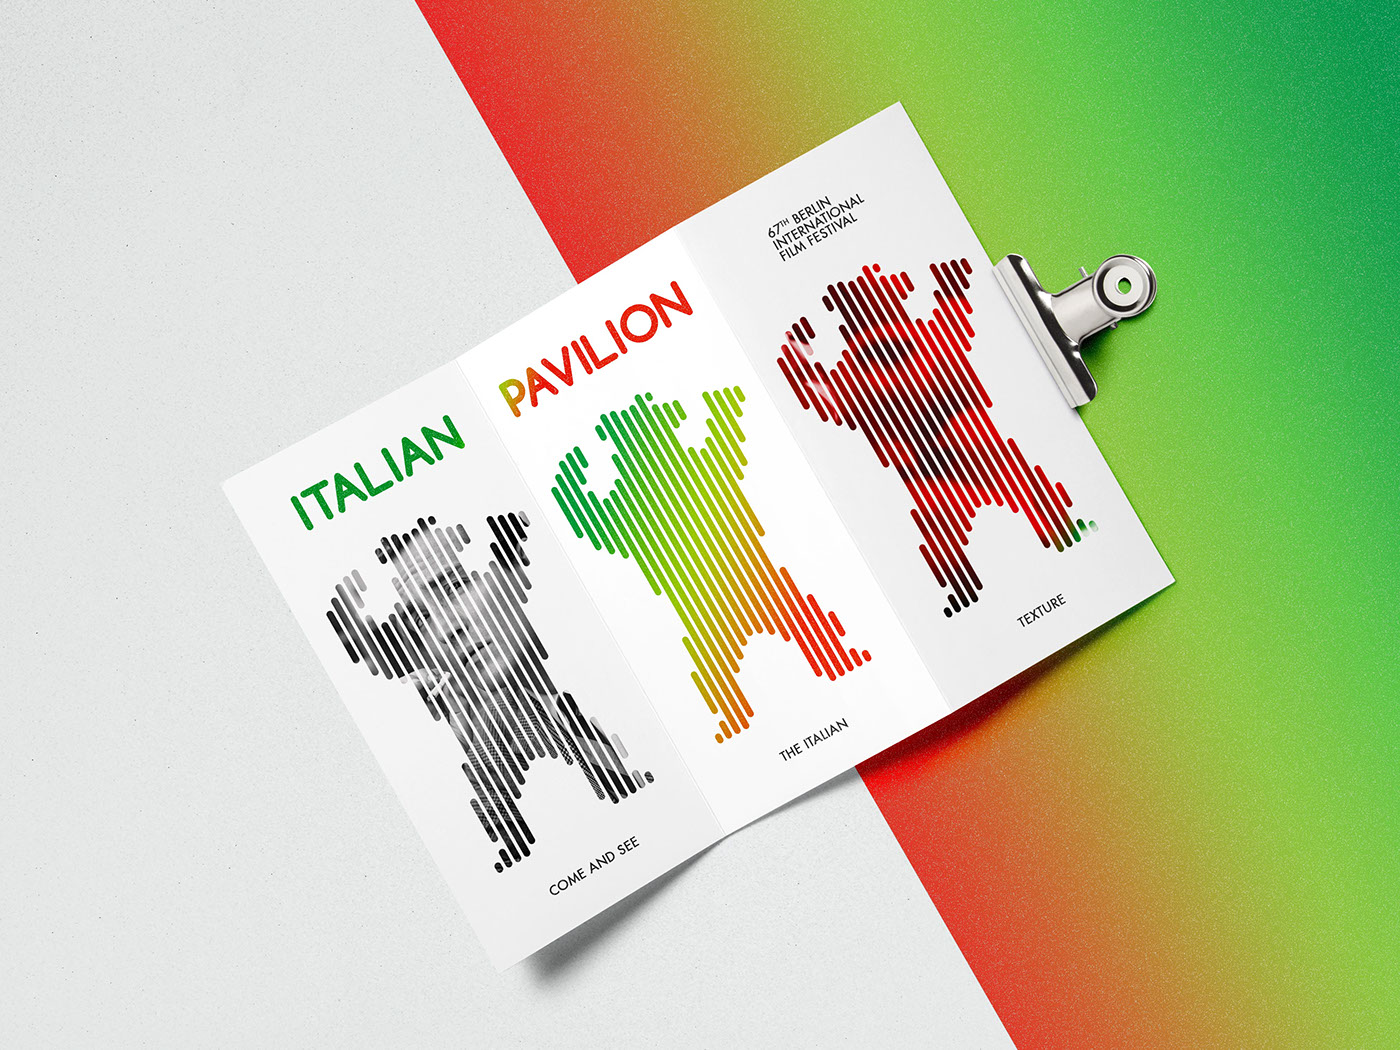 The Result Is A Textured Logo That Can Adopt Itself To Contain All Important Images Of Italy And Italian Movie Culture